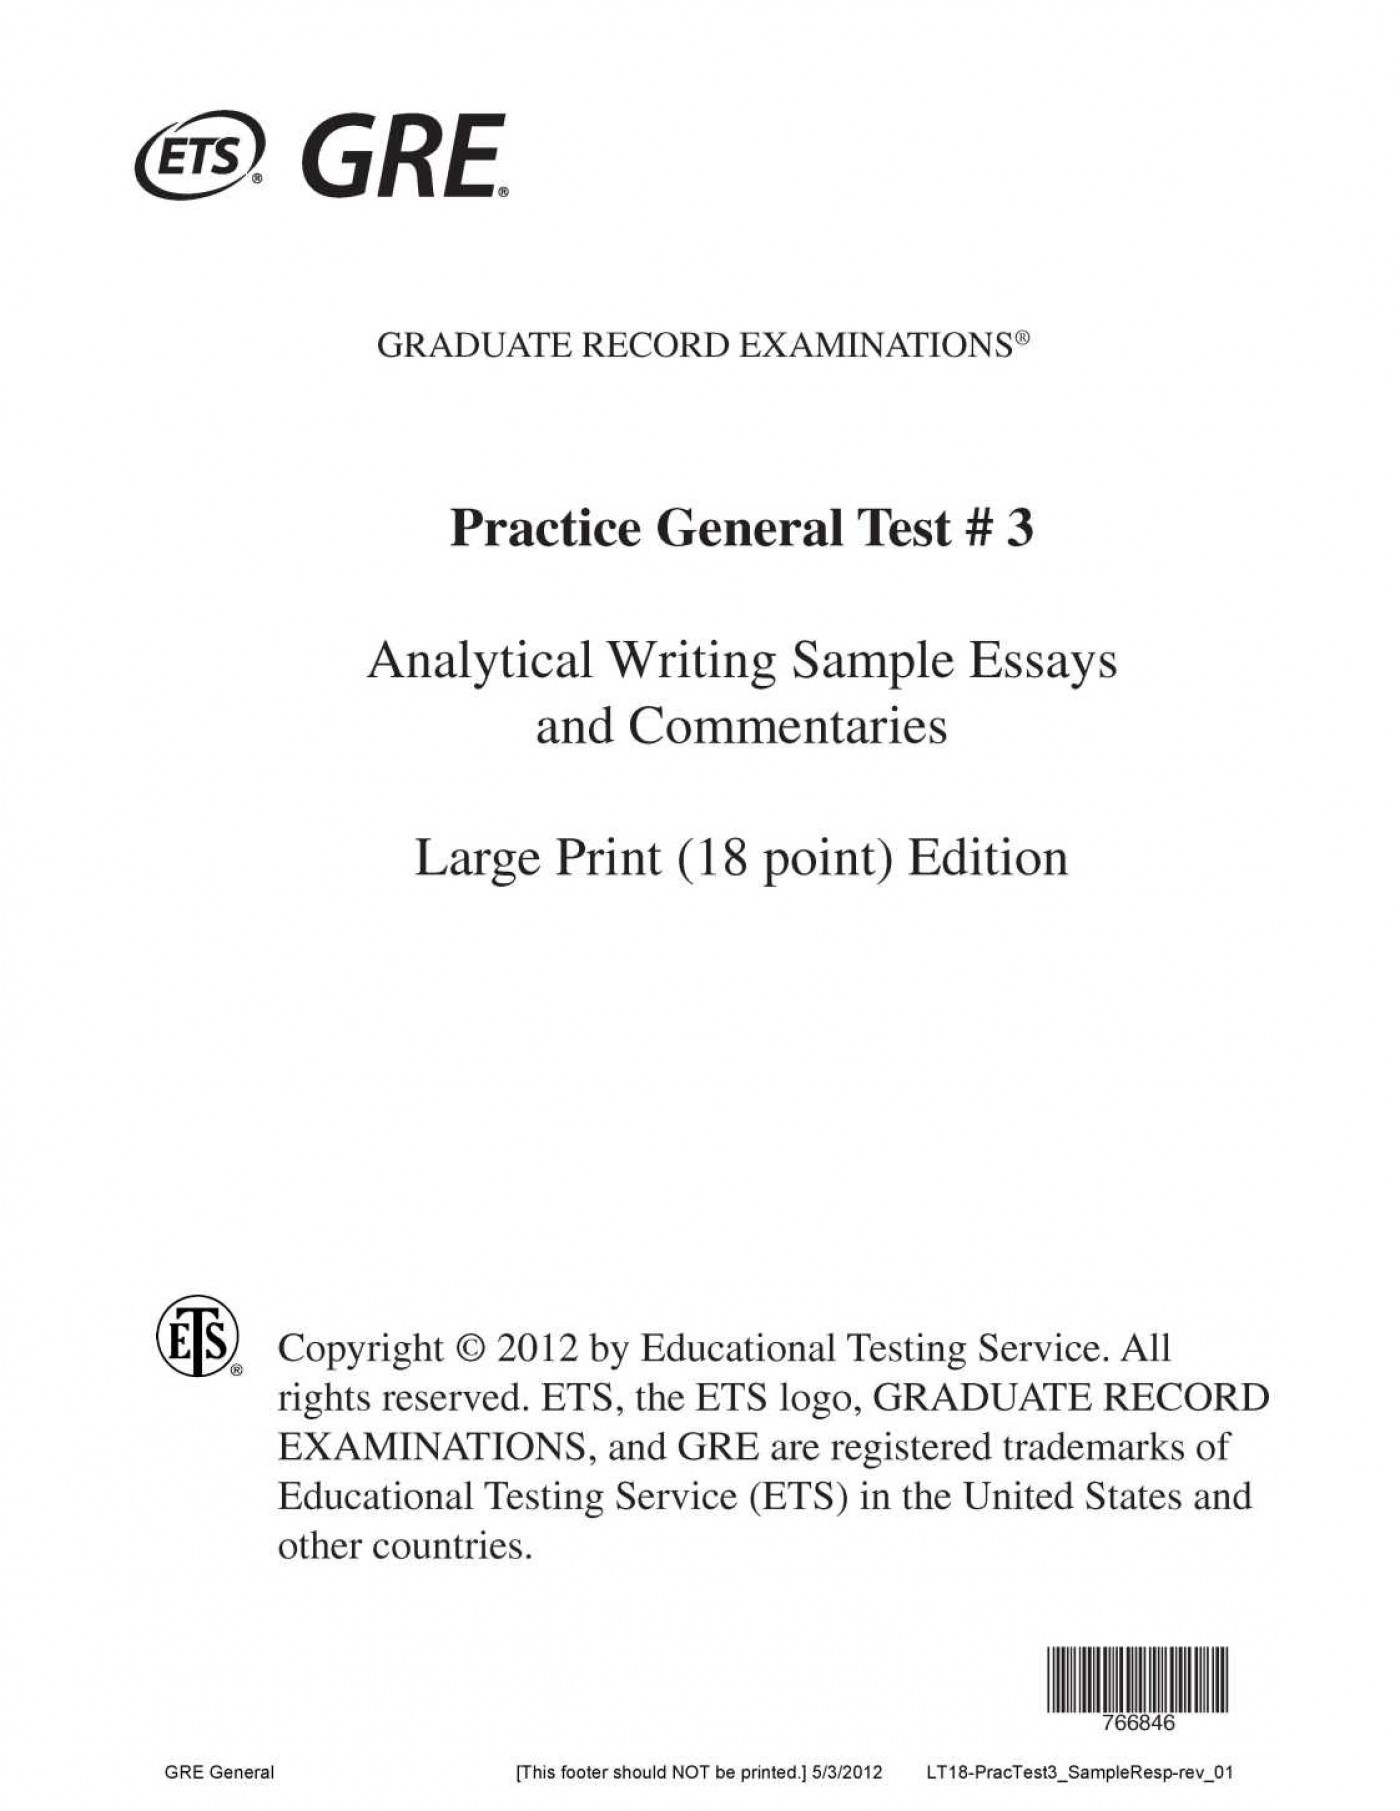 004 Gre Essay Book Pdf Example Essays Issue Meet The Categories Of Topics Writing Books Strategies Practice Examples Preparation Tips Incredible Analytical 1400